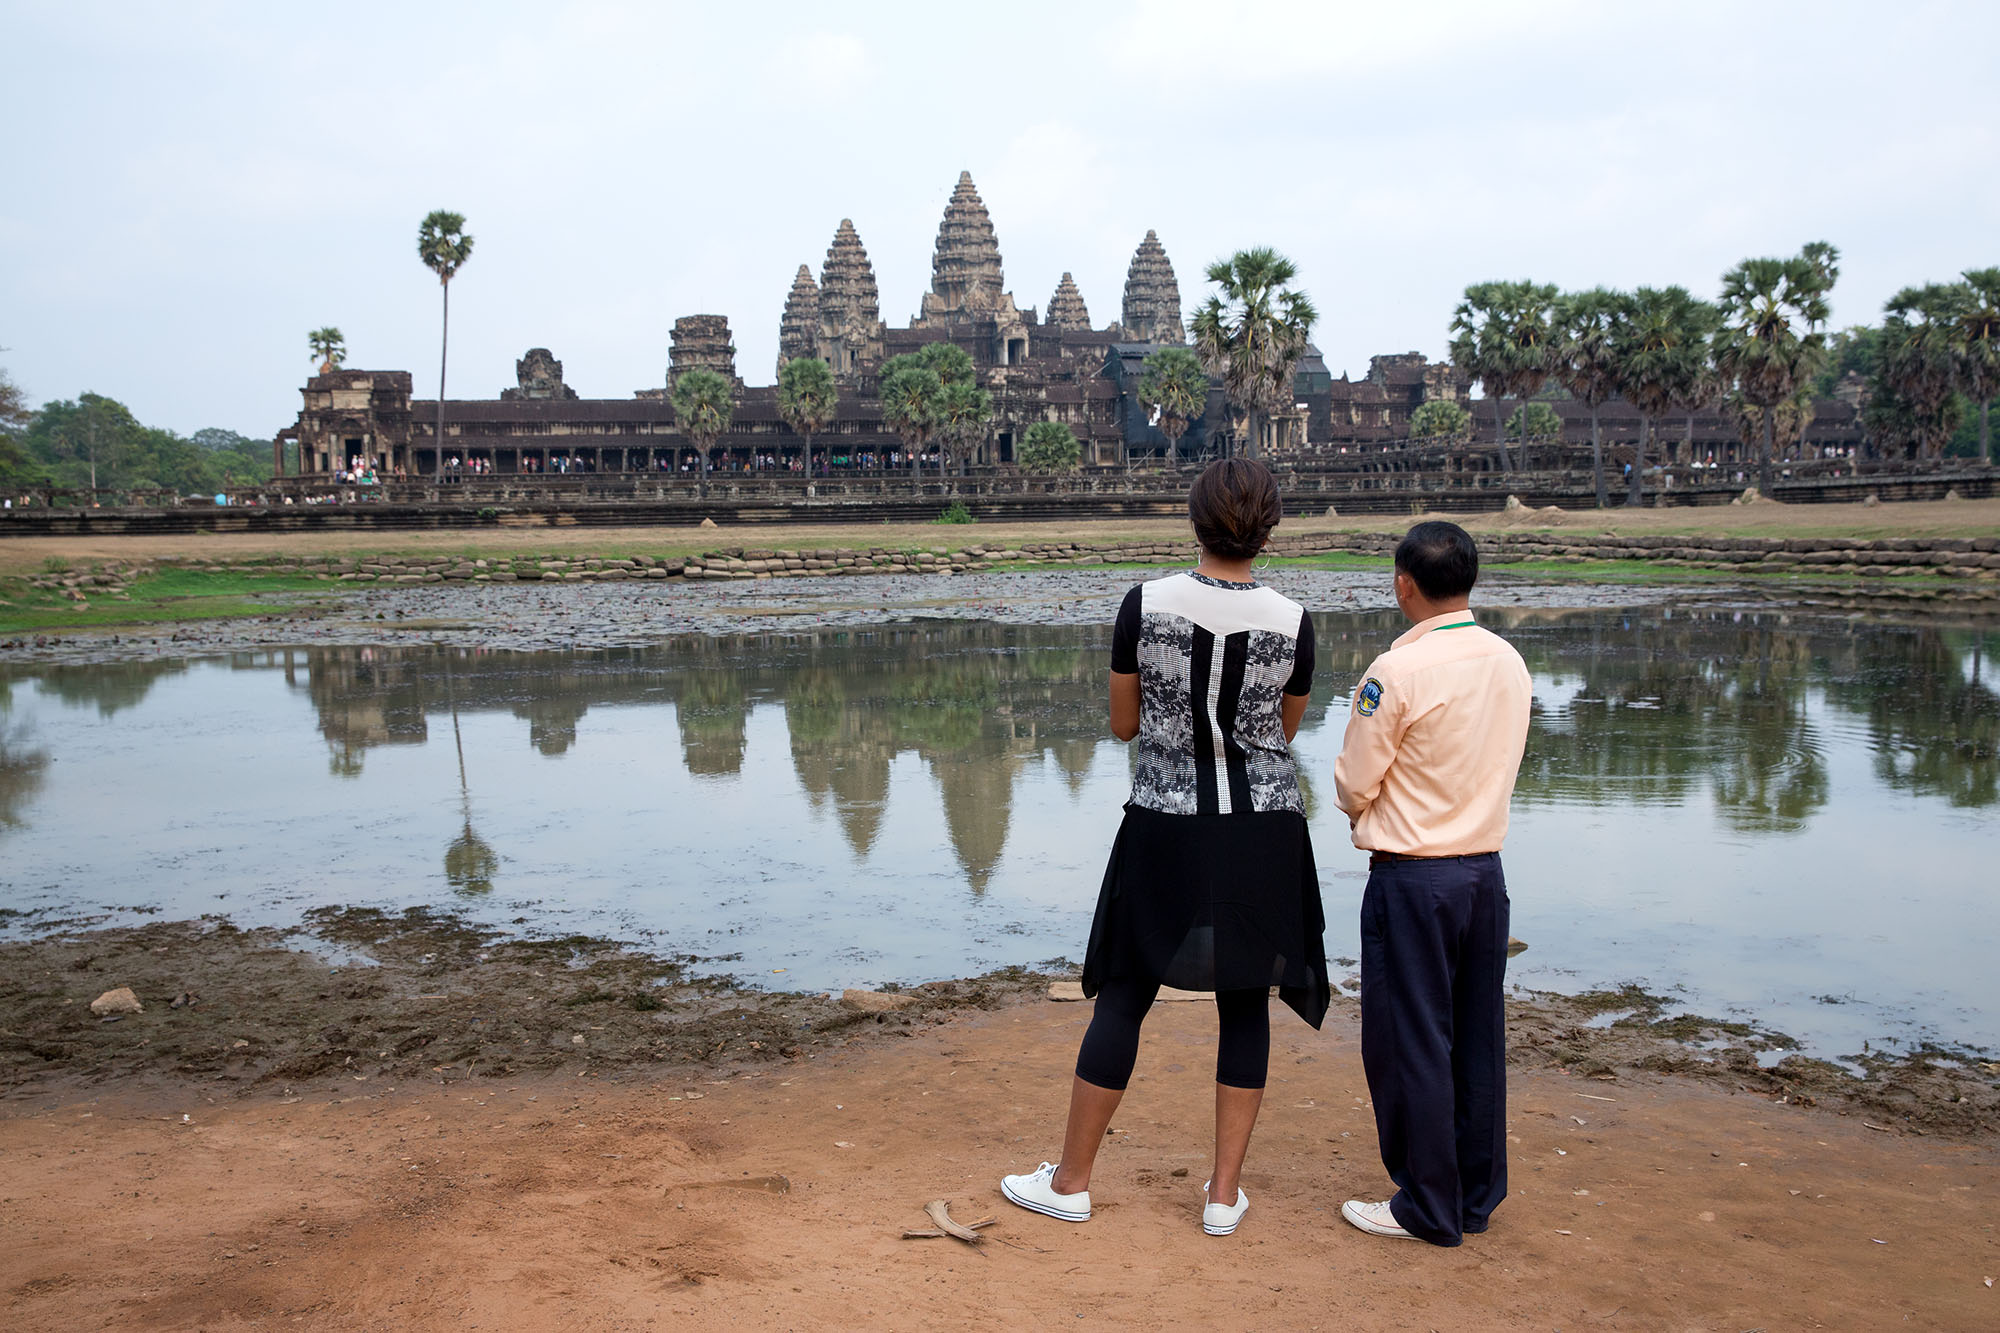 Mony Pech guides the First Lady on a tour of Angkor Wat in Angkor, Siem Reap Province, Cambodia. (Official White House Photo by Amanda Lucidon)